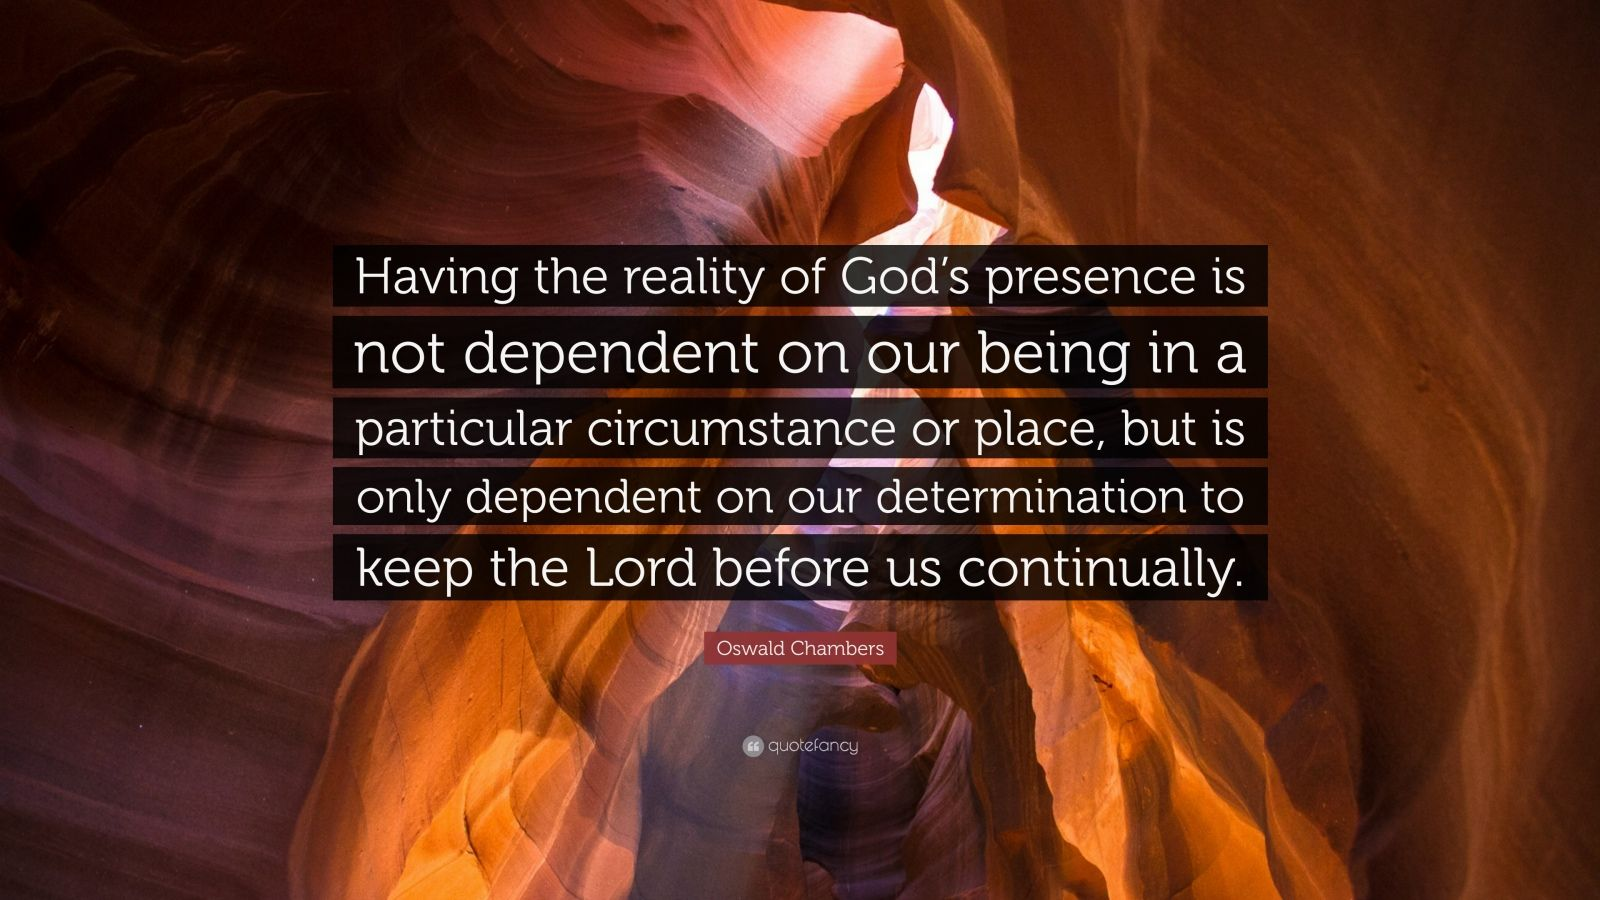 """Oswald Chambers Quote: """"Having the reality of God's presence is not dependent on our being in a particular circumstance or place, but is only dependent on our determination to keep the Lord before us continually."""""""